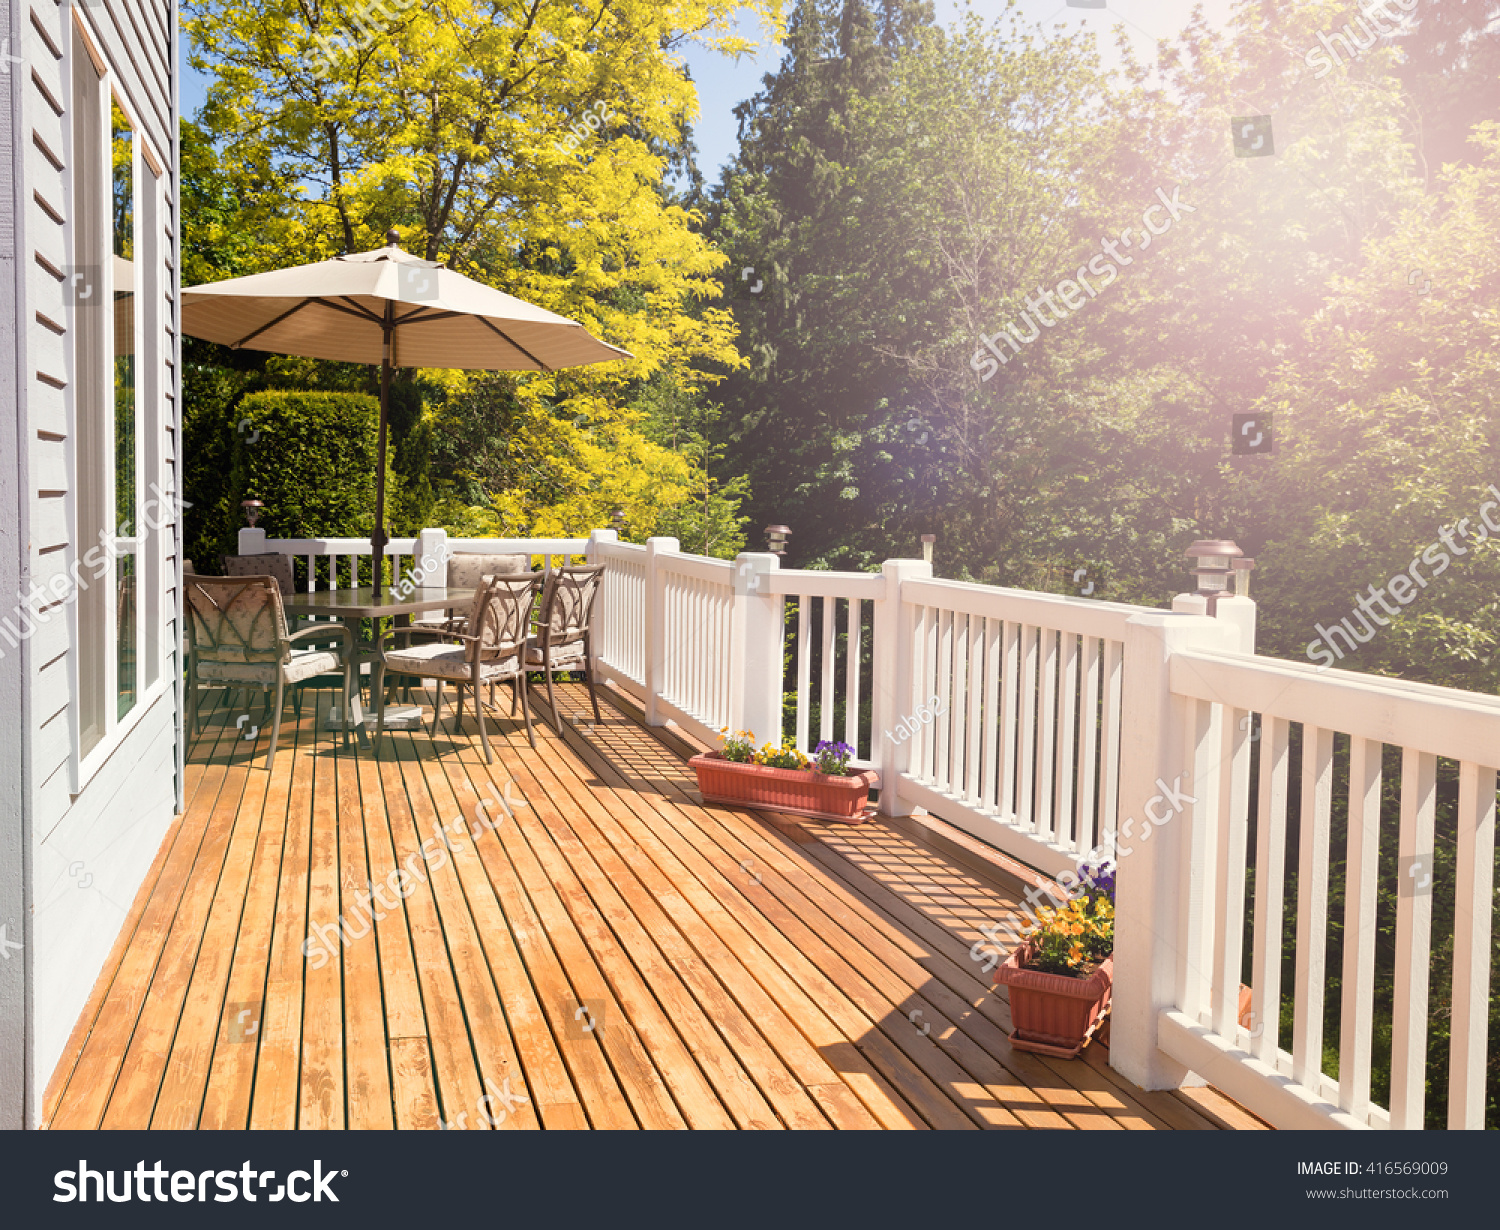 Afternoon bright daylight on outdoor home cedar deck with furniture and open umbrella. Light effect applied to image. Horizontal layout.  #416569009